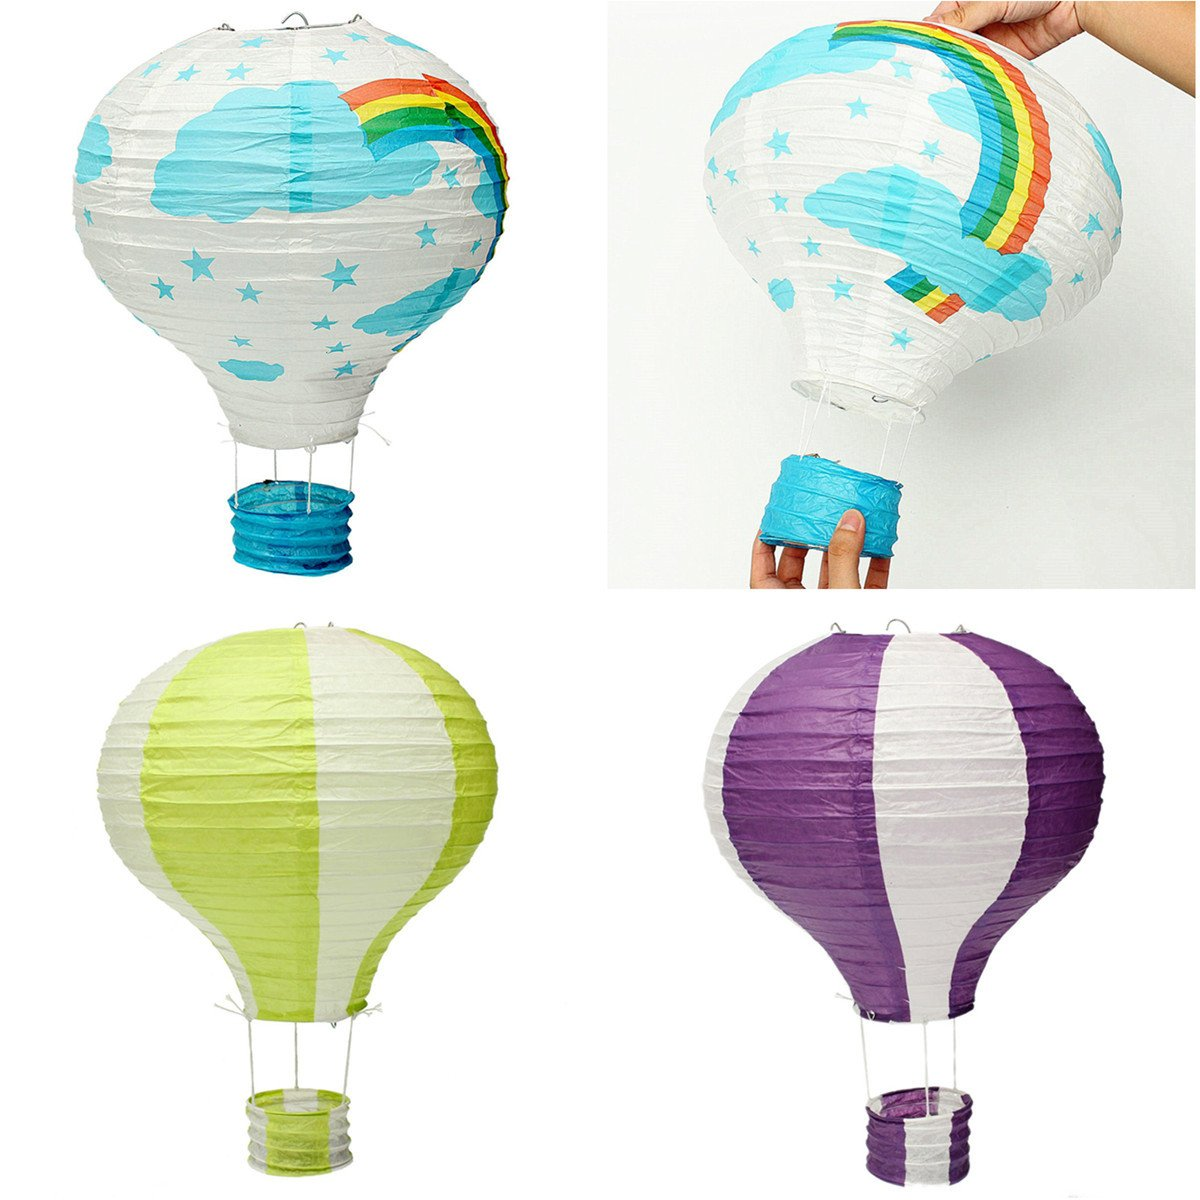 HITSAN Air balloon Air Balloon paper lanterns wendding party festival colour decorate One Piece